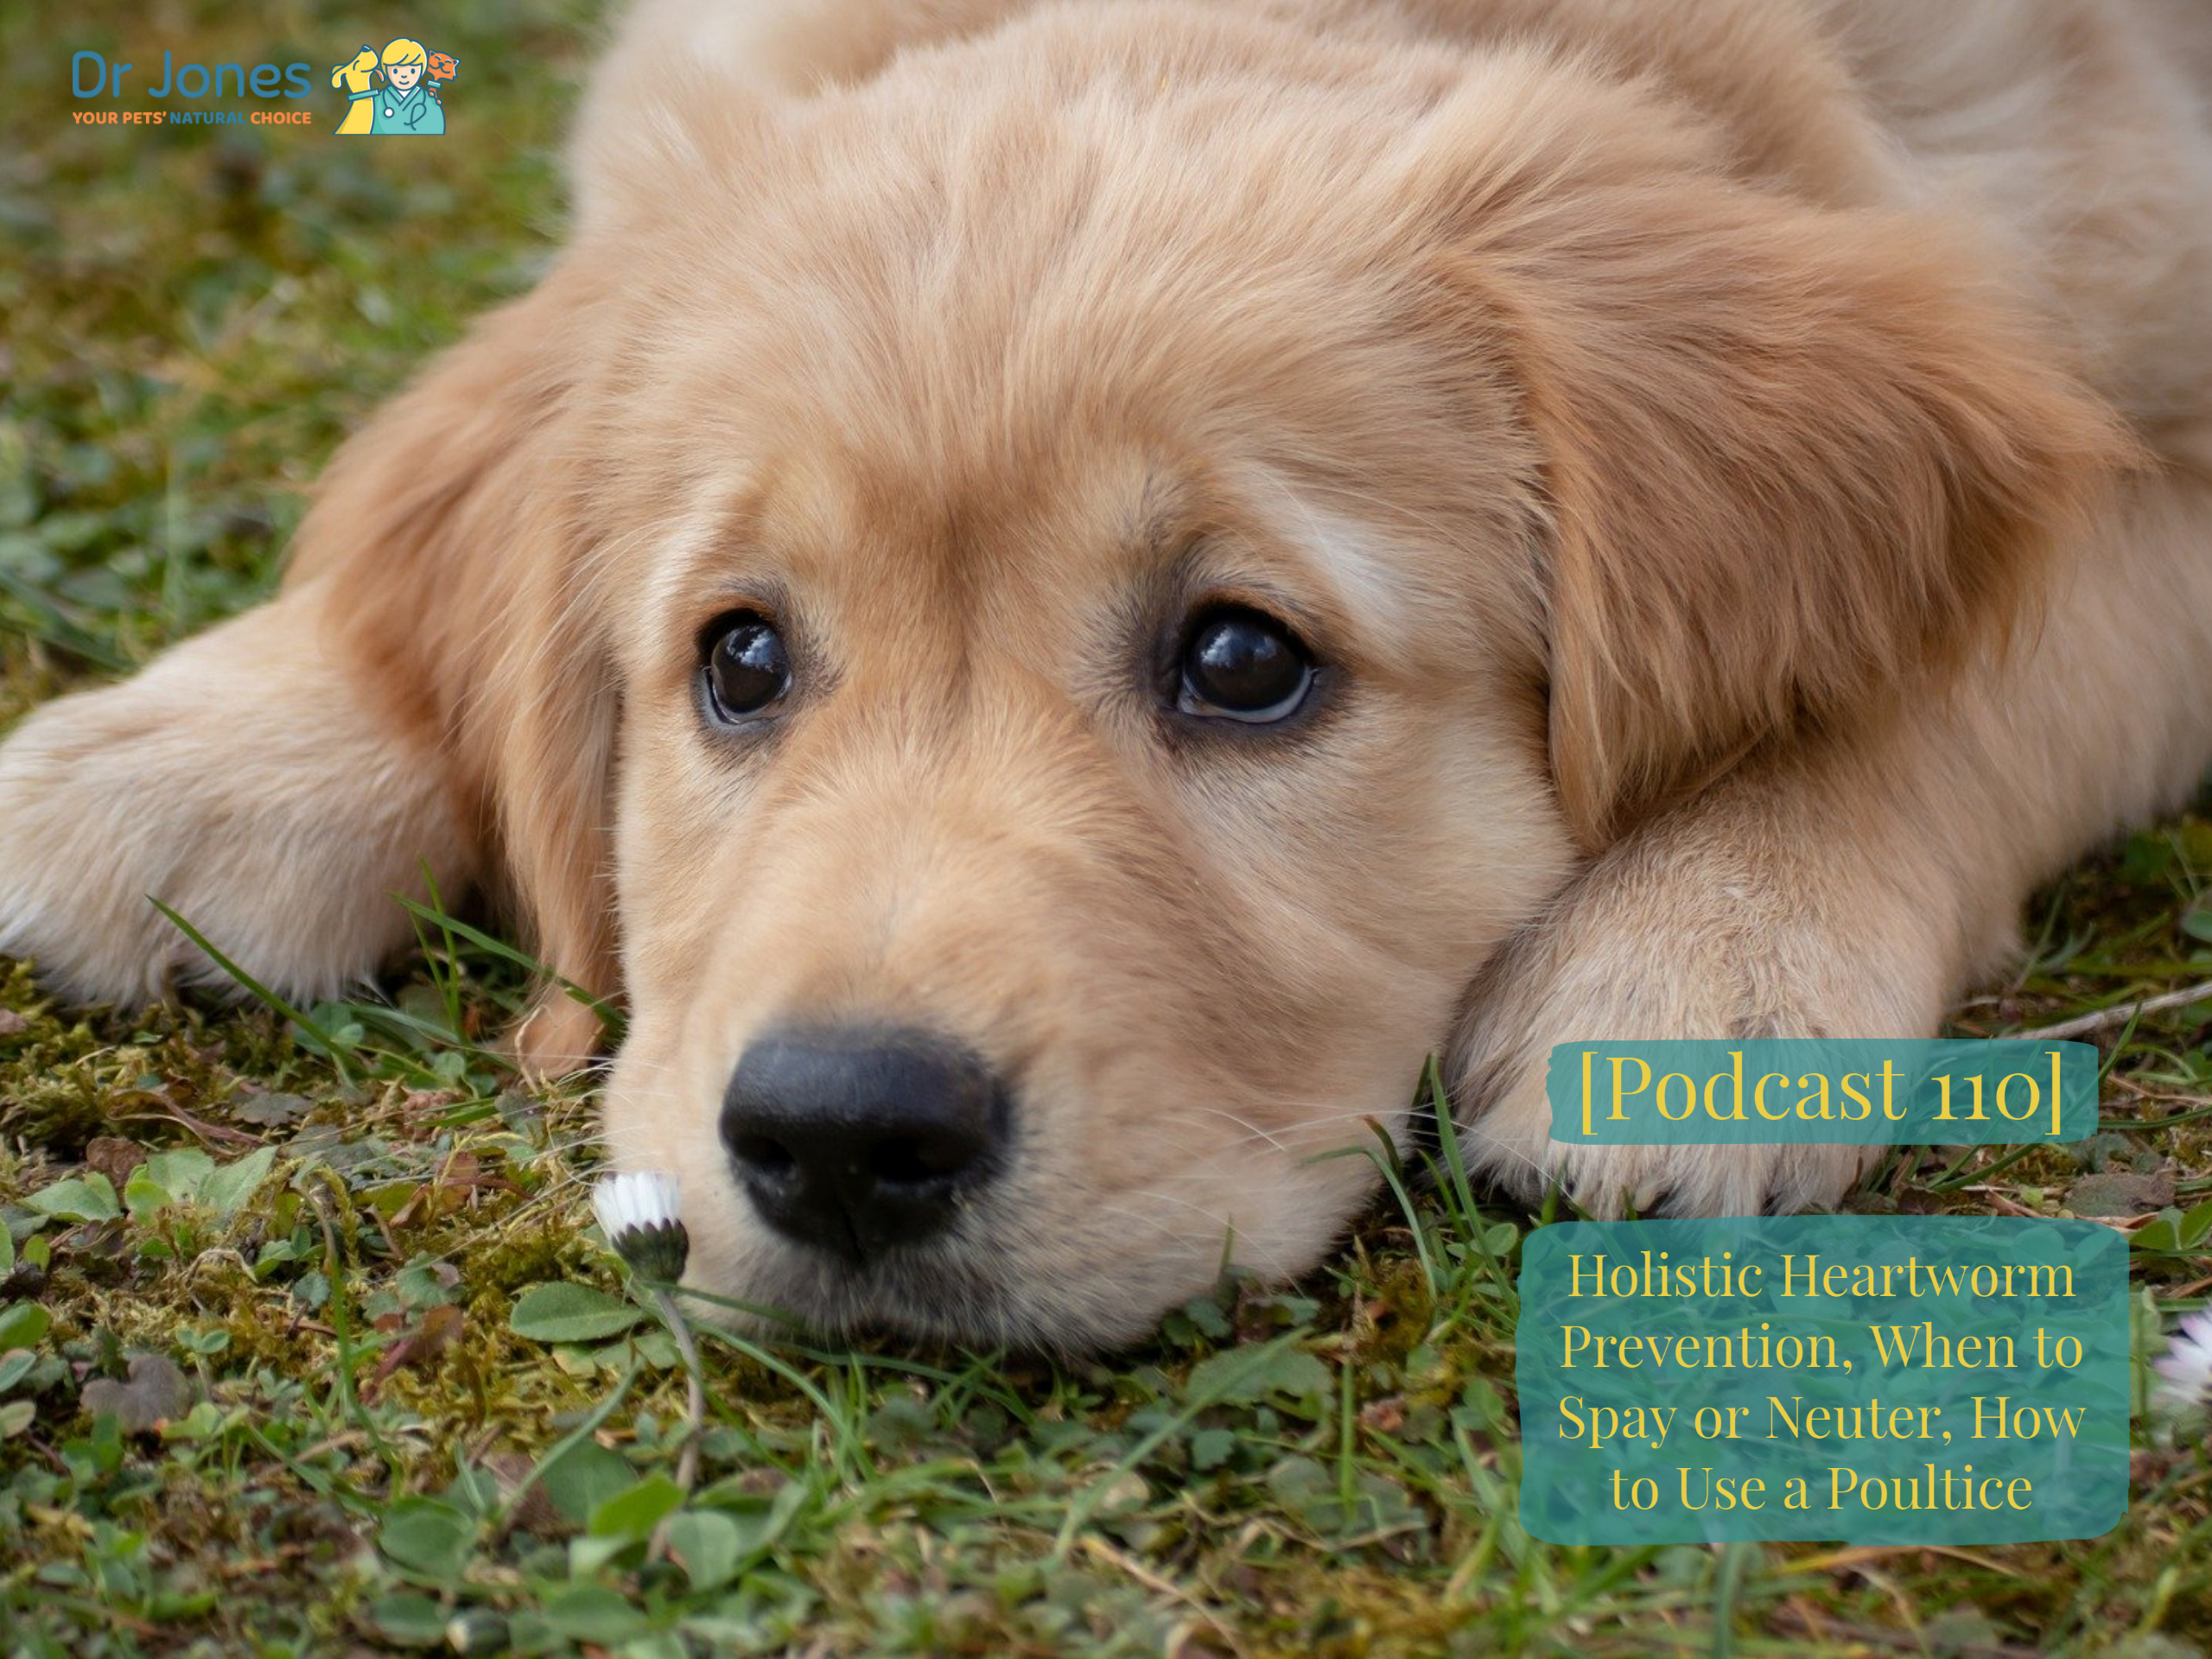 [Podcast 110] Holistic Heartworm Prevention, When to Spay or Neuter, How to Use a Poultice